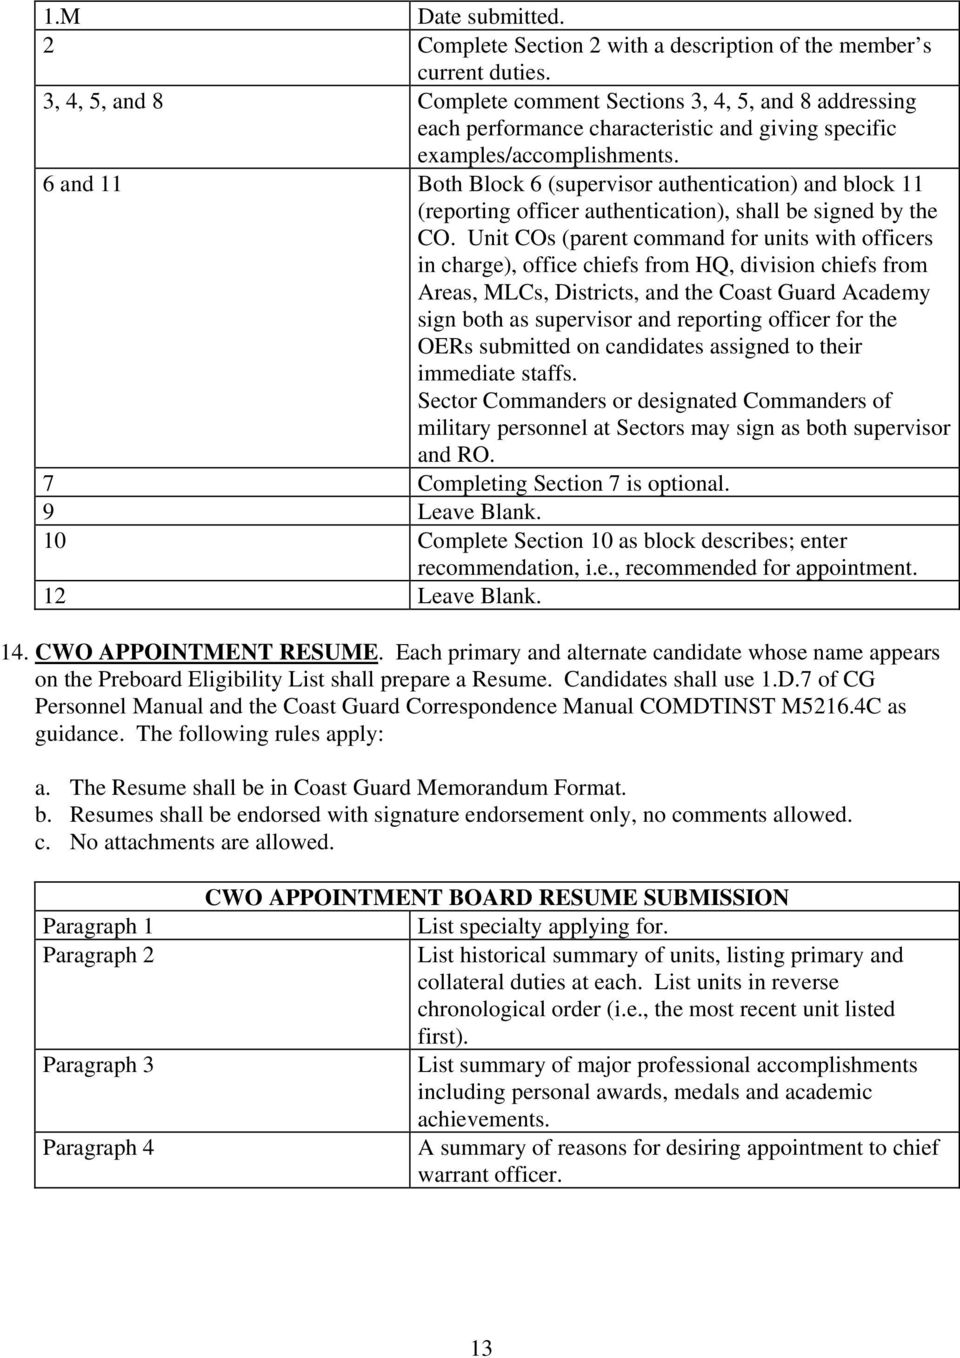 Active Duty Chief Warrant Officer Cwo Appointment Guide Pdf